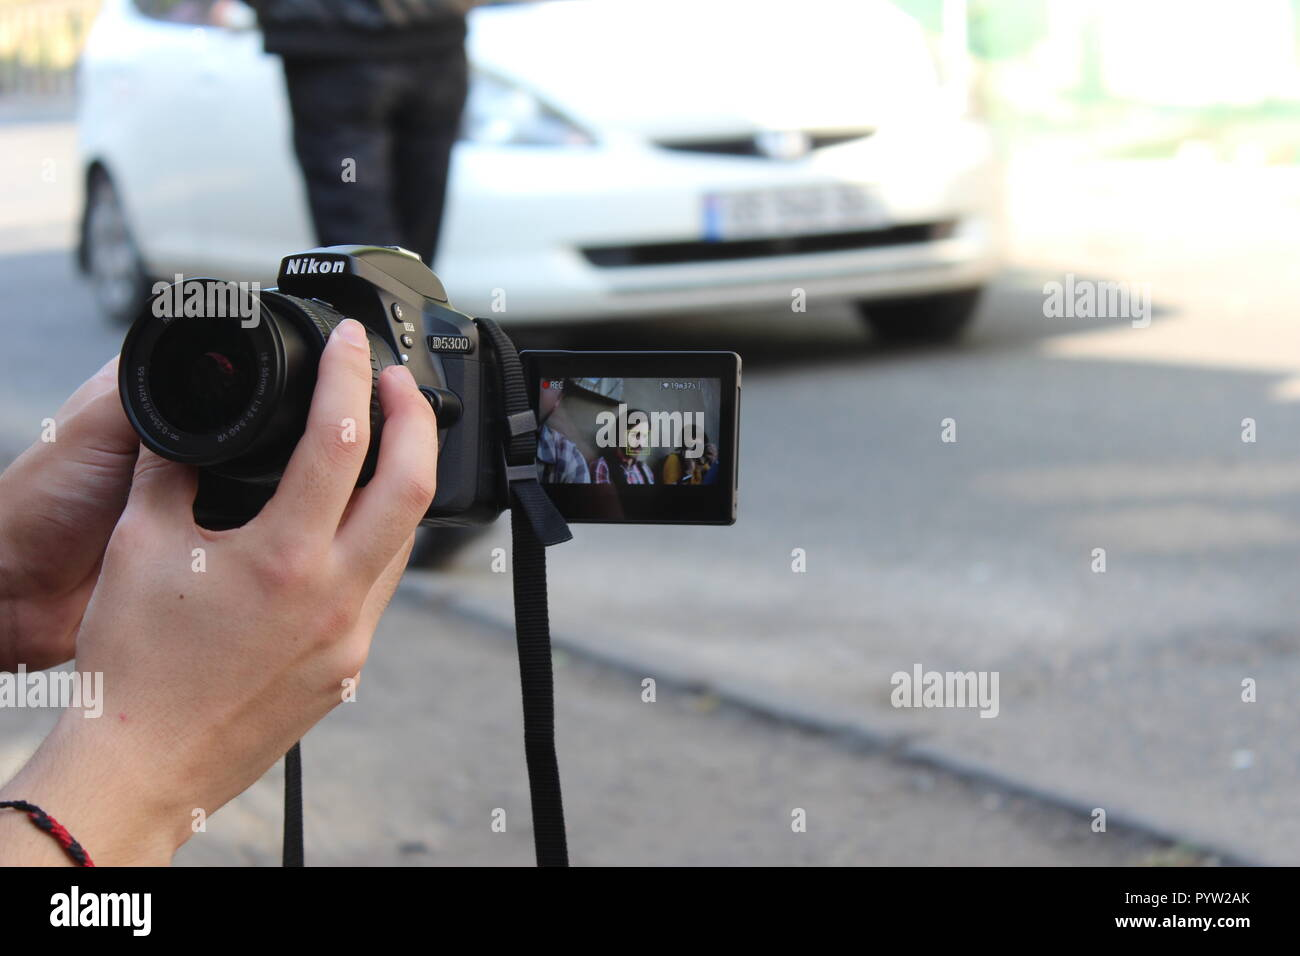 selfie with camera - Stock Image